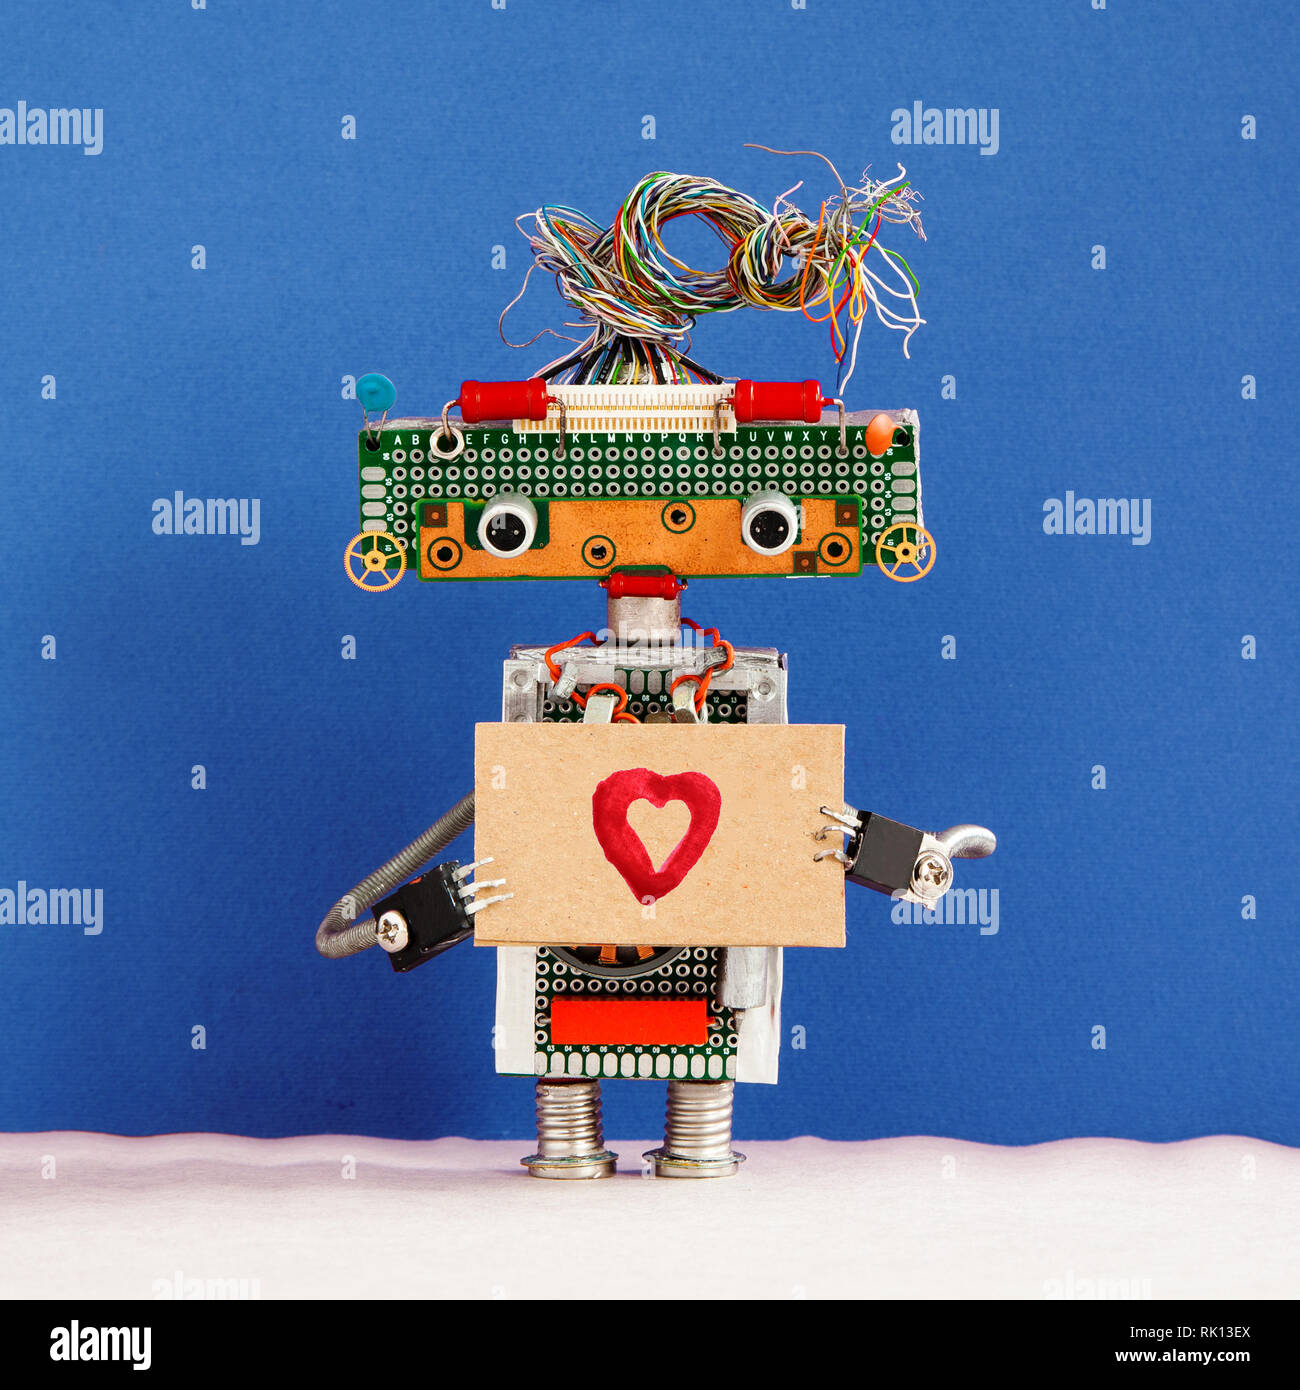 Robot holds greeting card love heart symbol. Valentines day romantic message for all lovers from robotic character. - Stock Image